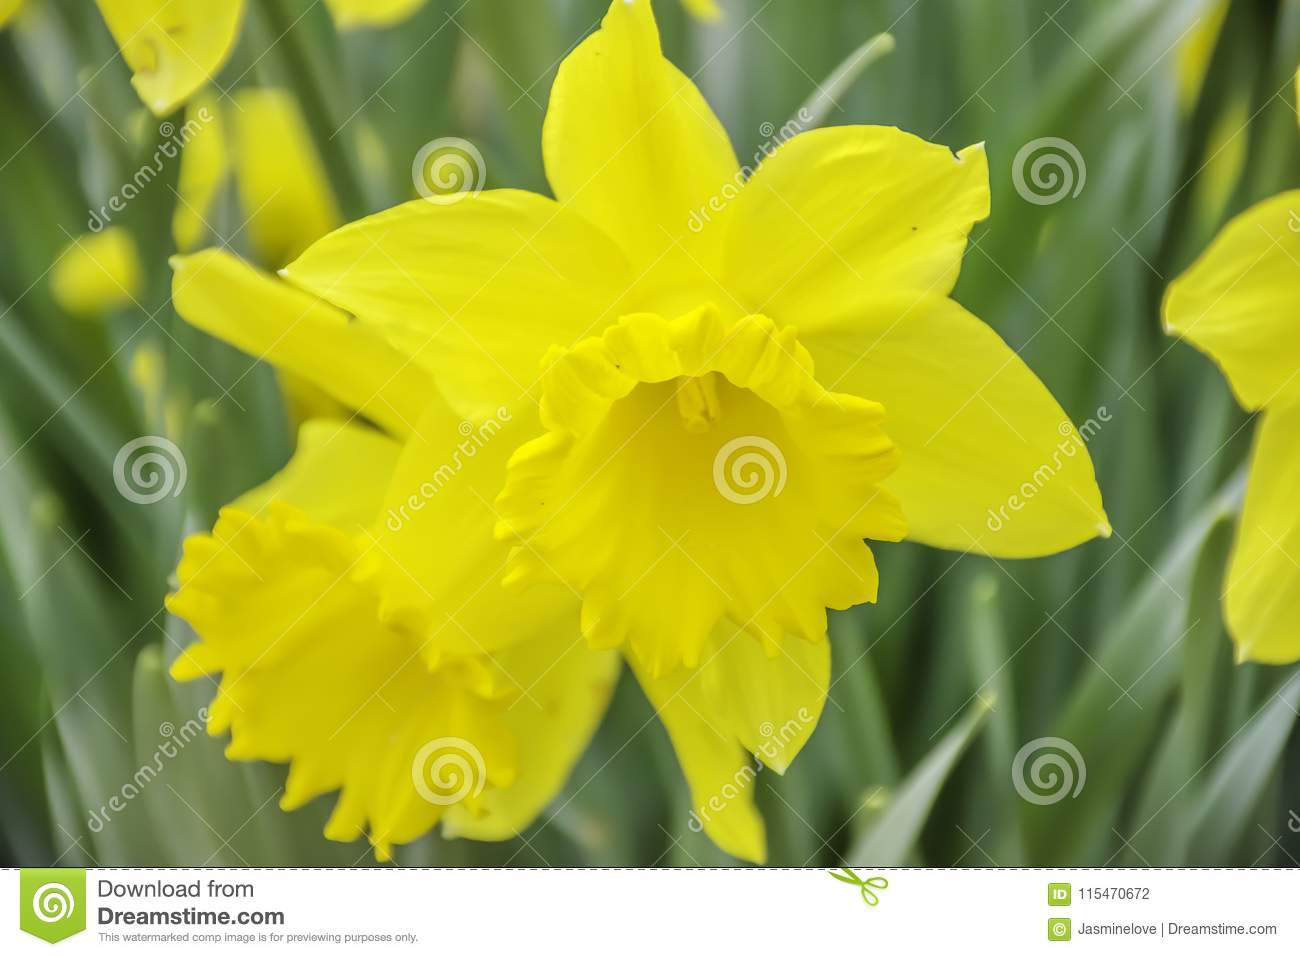 Daffodil Flower Blossom In Spring Stock Photo Image Of Wild